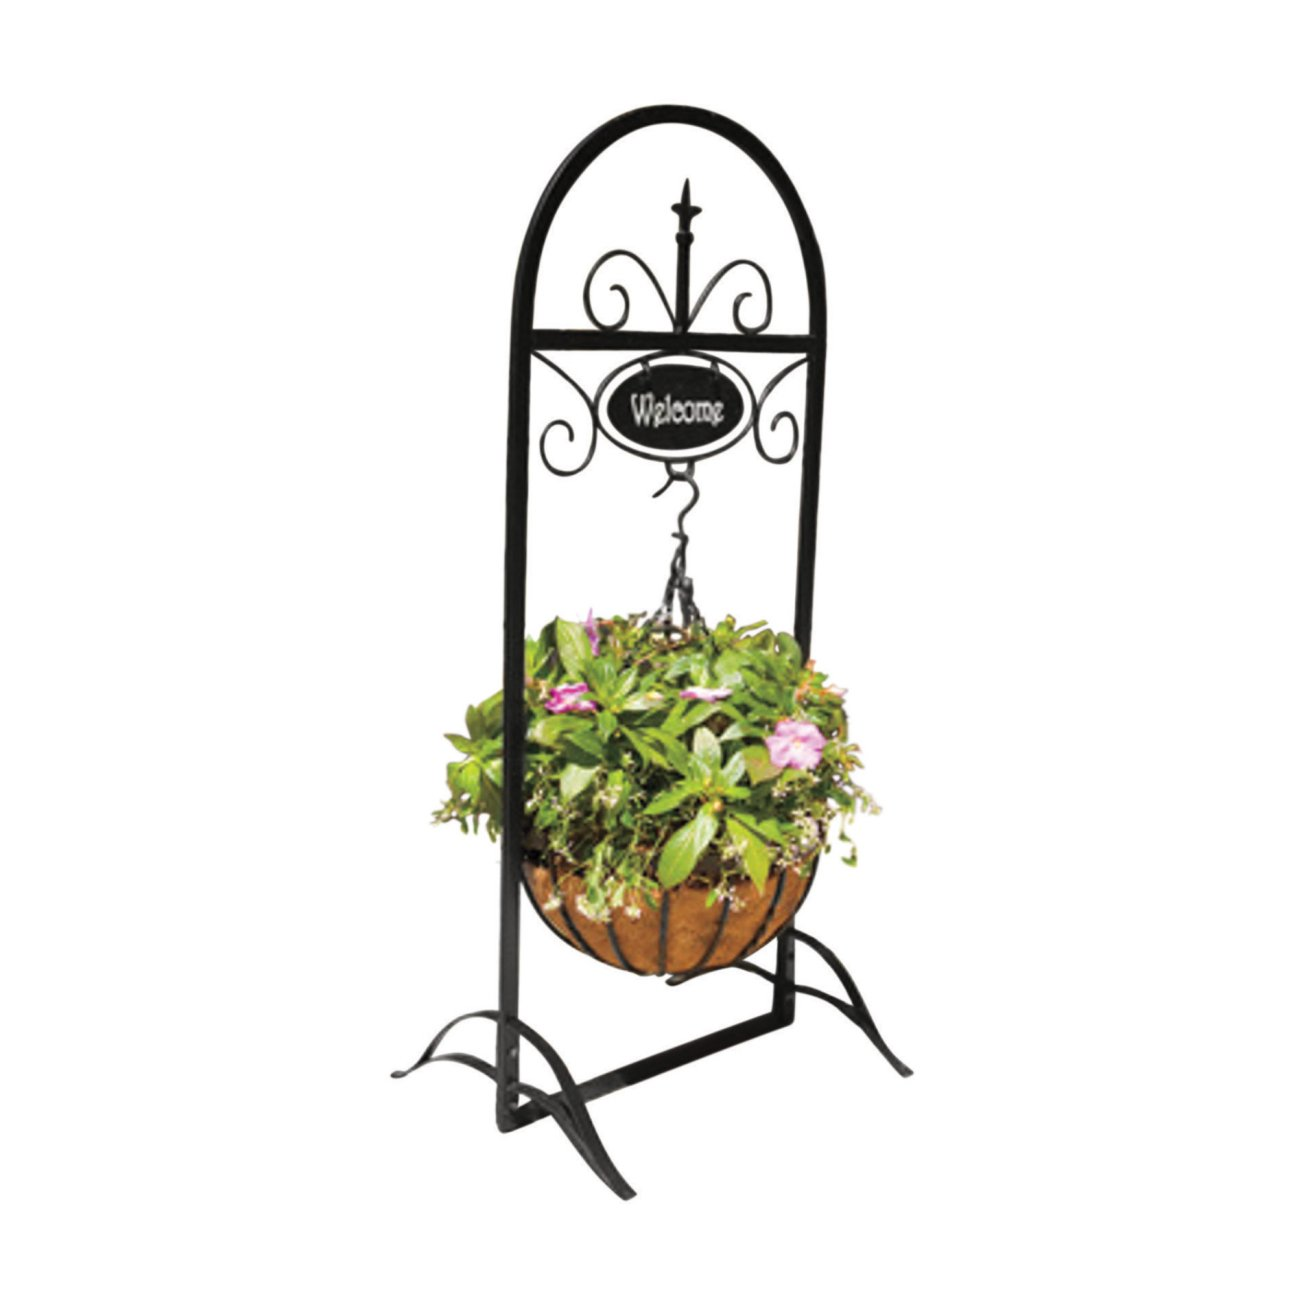 Panacea 88102 Welcome Basket Plant Stand, 48\